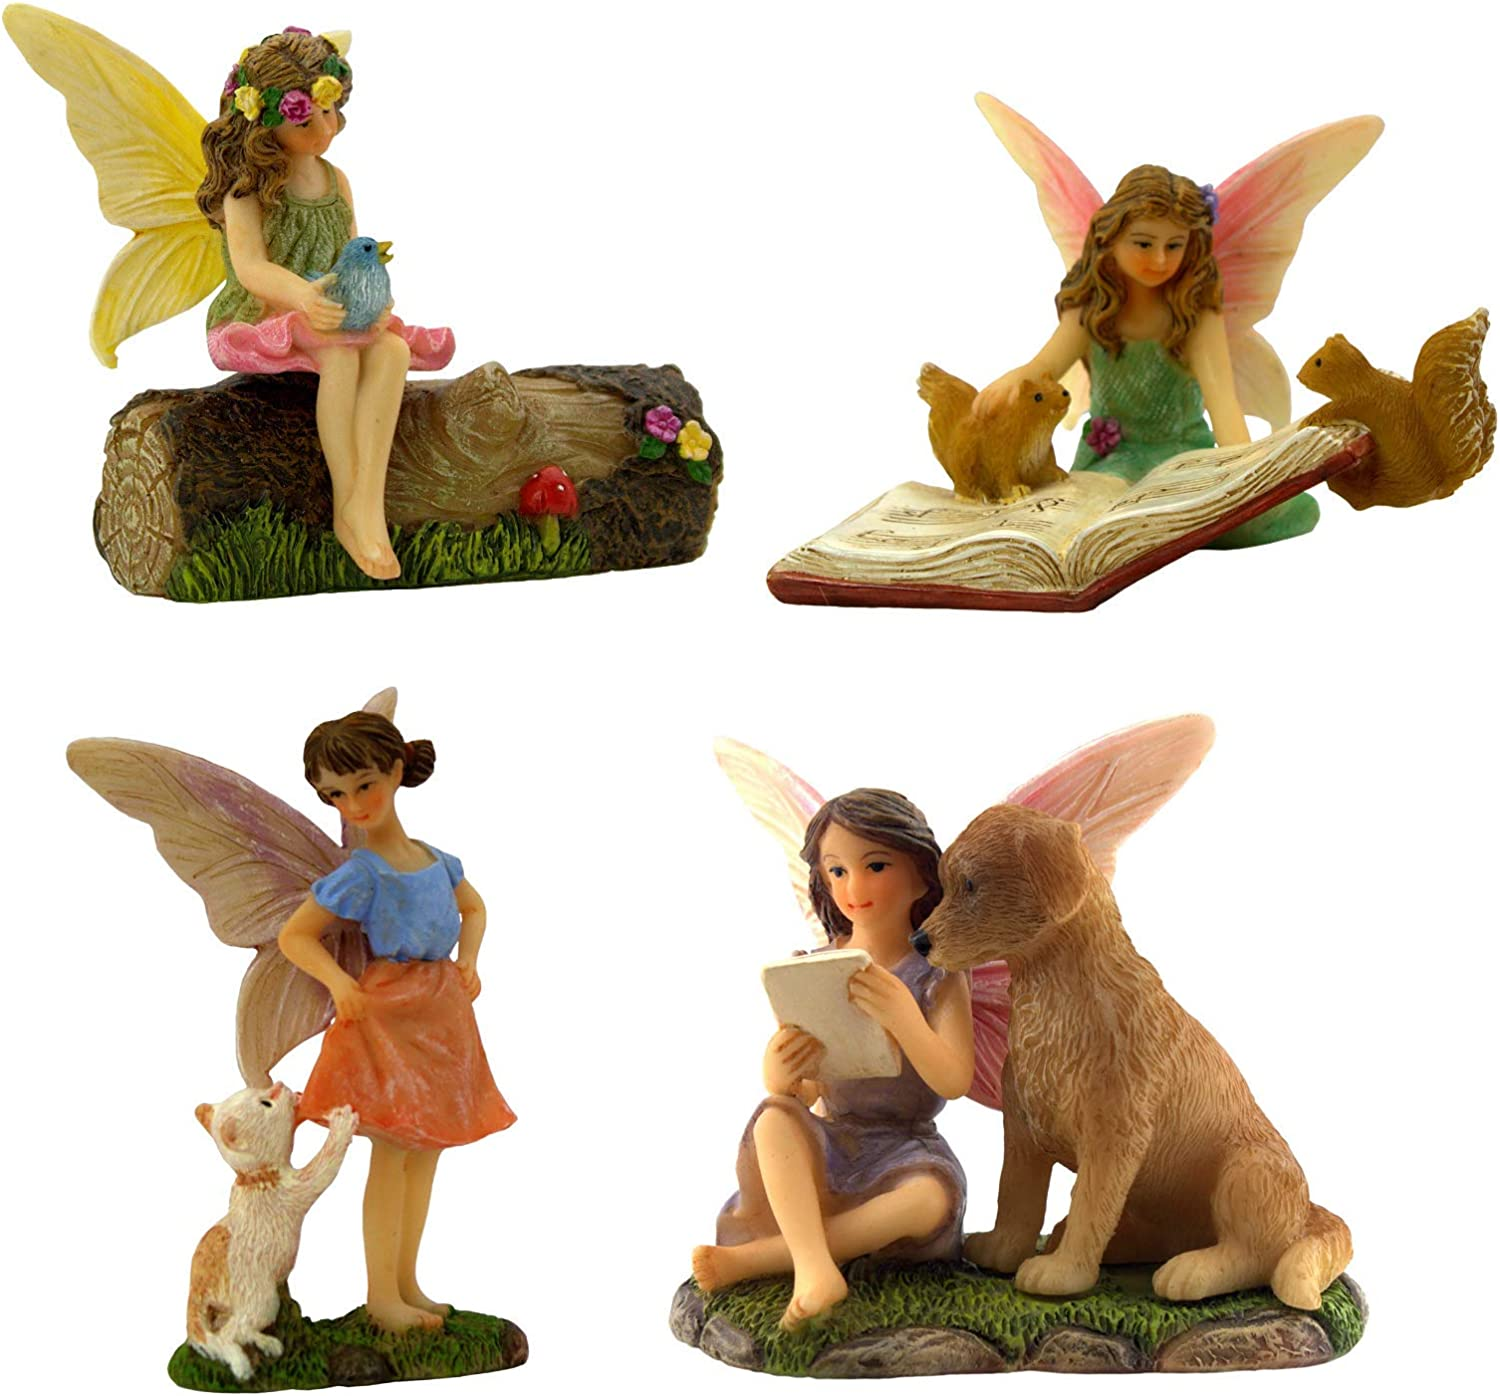 PRETMANNS Fairies for Fairy Garden – Fairy Figurines for a Miniature Garden – Fairys with Their Favorite Animal Friends – Flower Decorated Resin Tree Stump Included – 5 Pieces